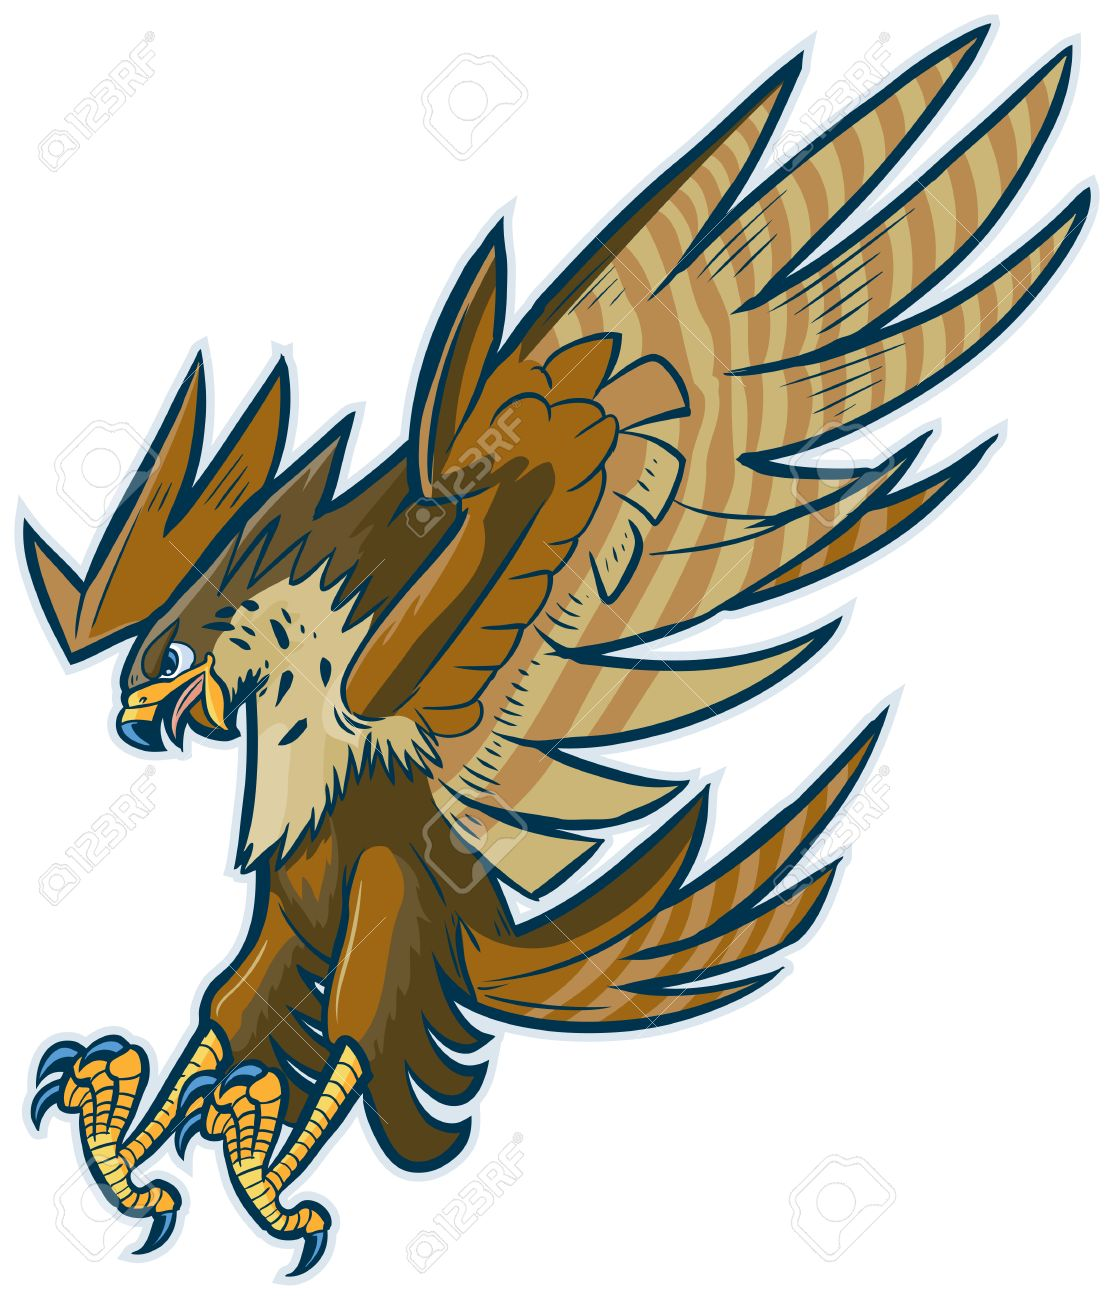 hight resolution of vector vector cartoon clip art illustration of a hawk falcon or eagle mascot diving or swooping down with spread wings and talons and beak open